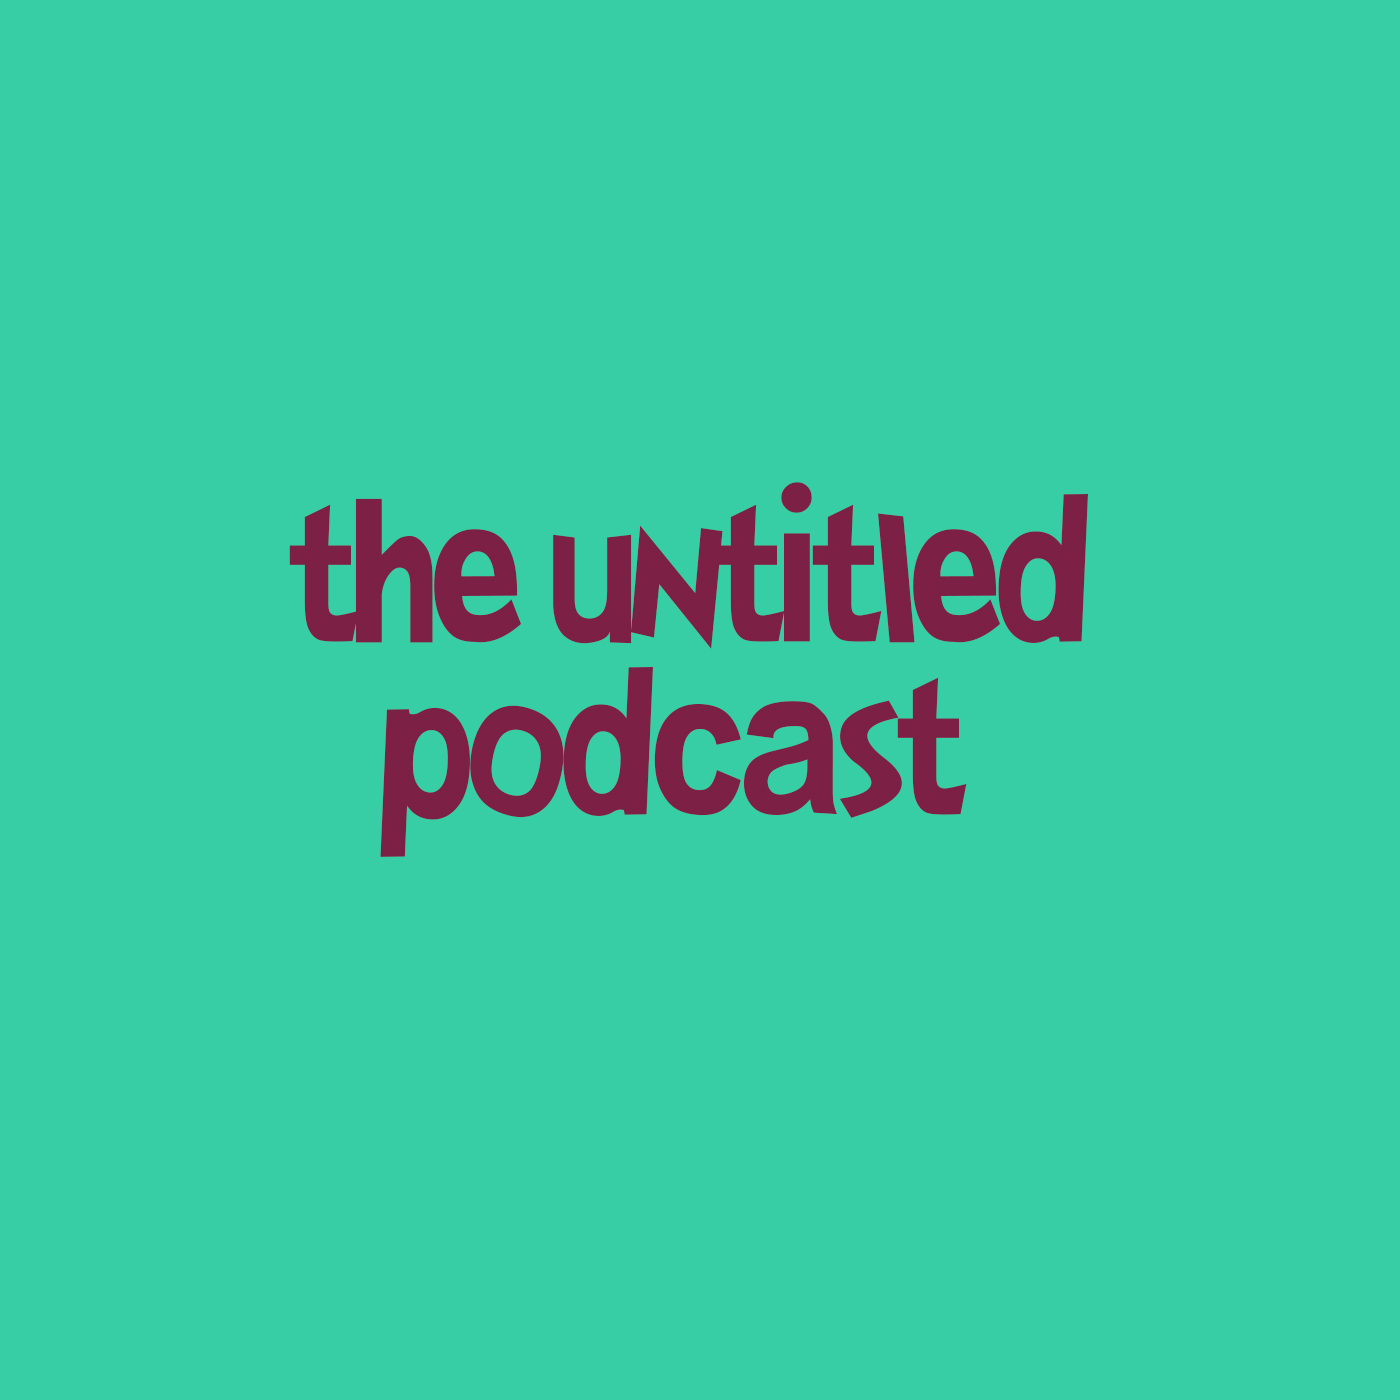 TheUntitledPodcast